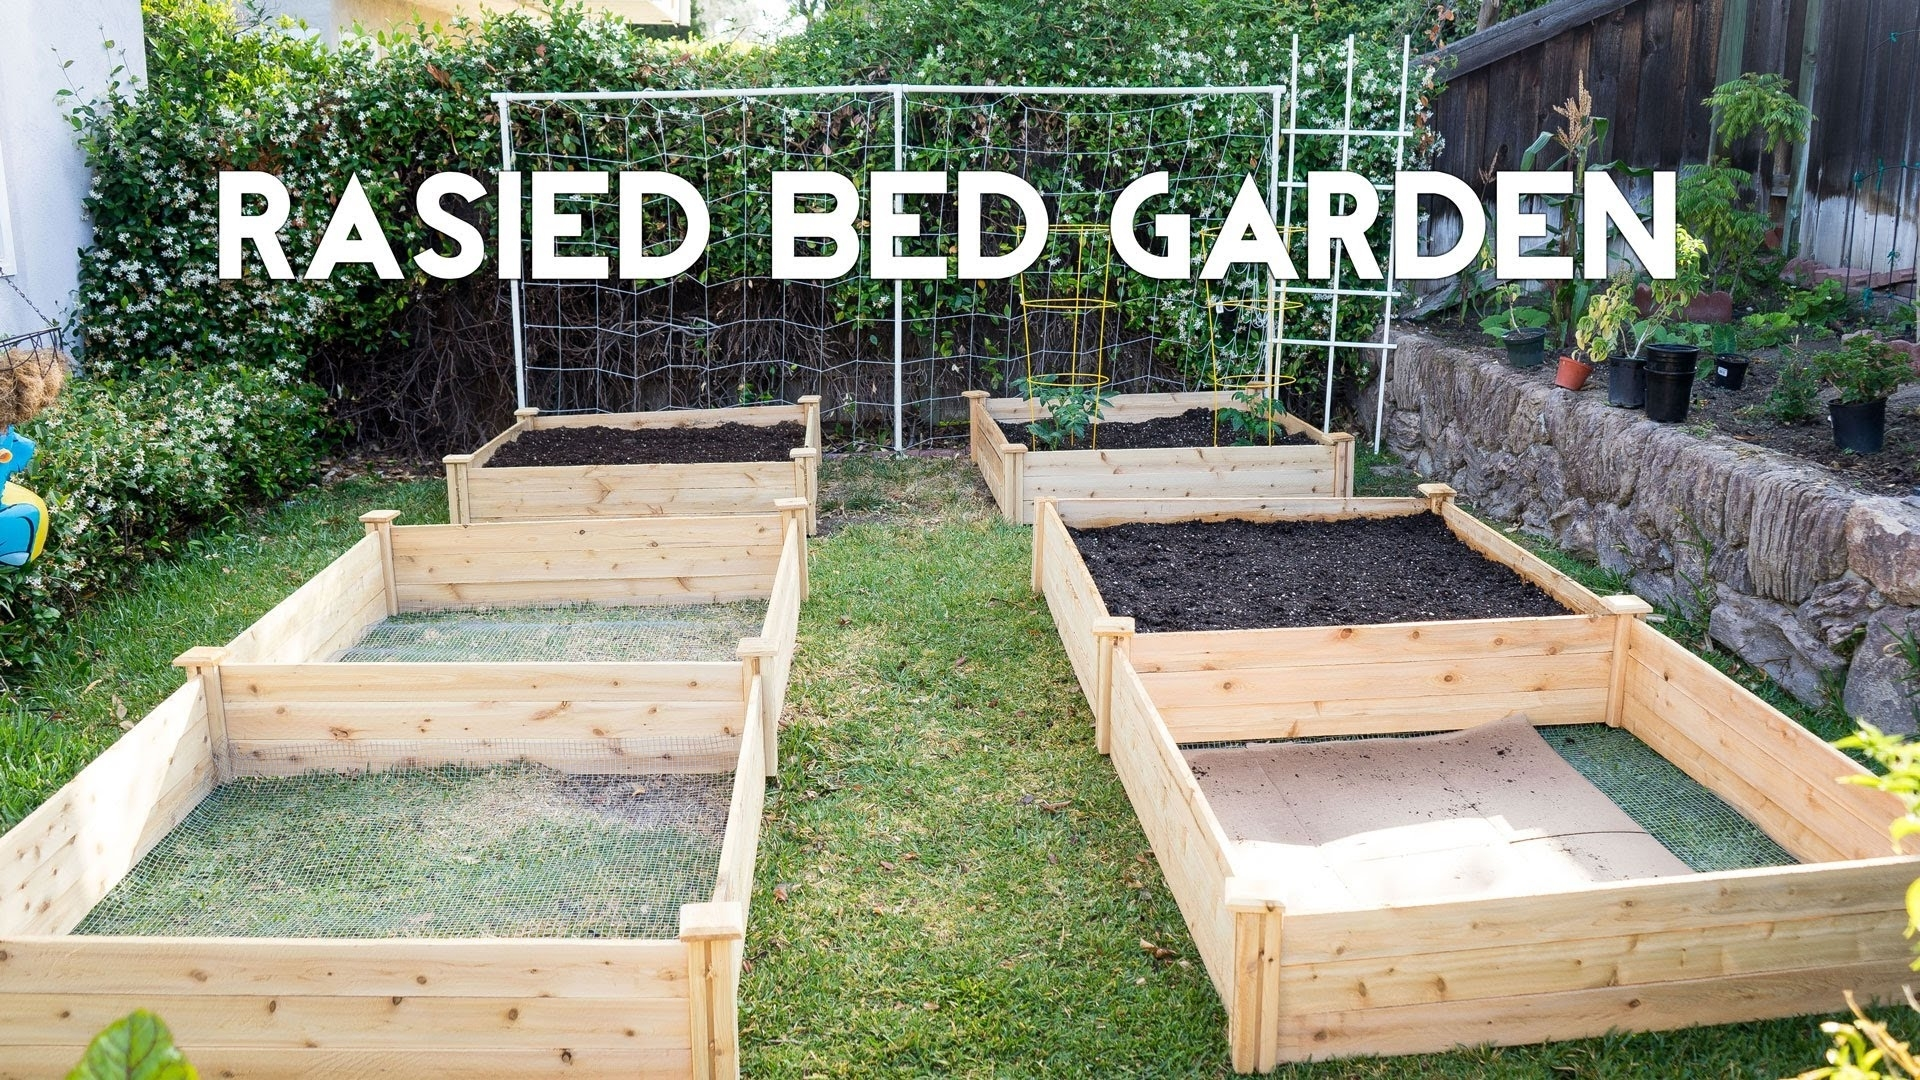 Raised Bed Gardening - How To Start A Garden With Raised Beds - Youtube with regard to Backyard Raised Vegetable Garden Ideas